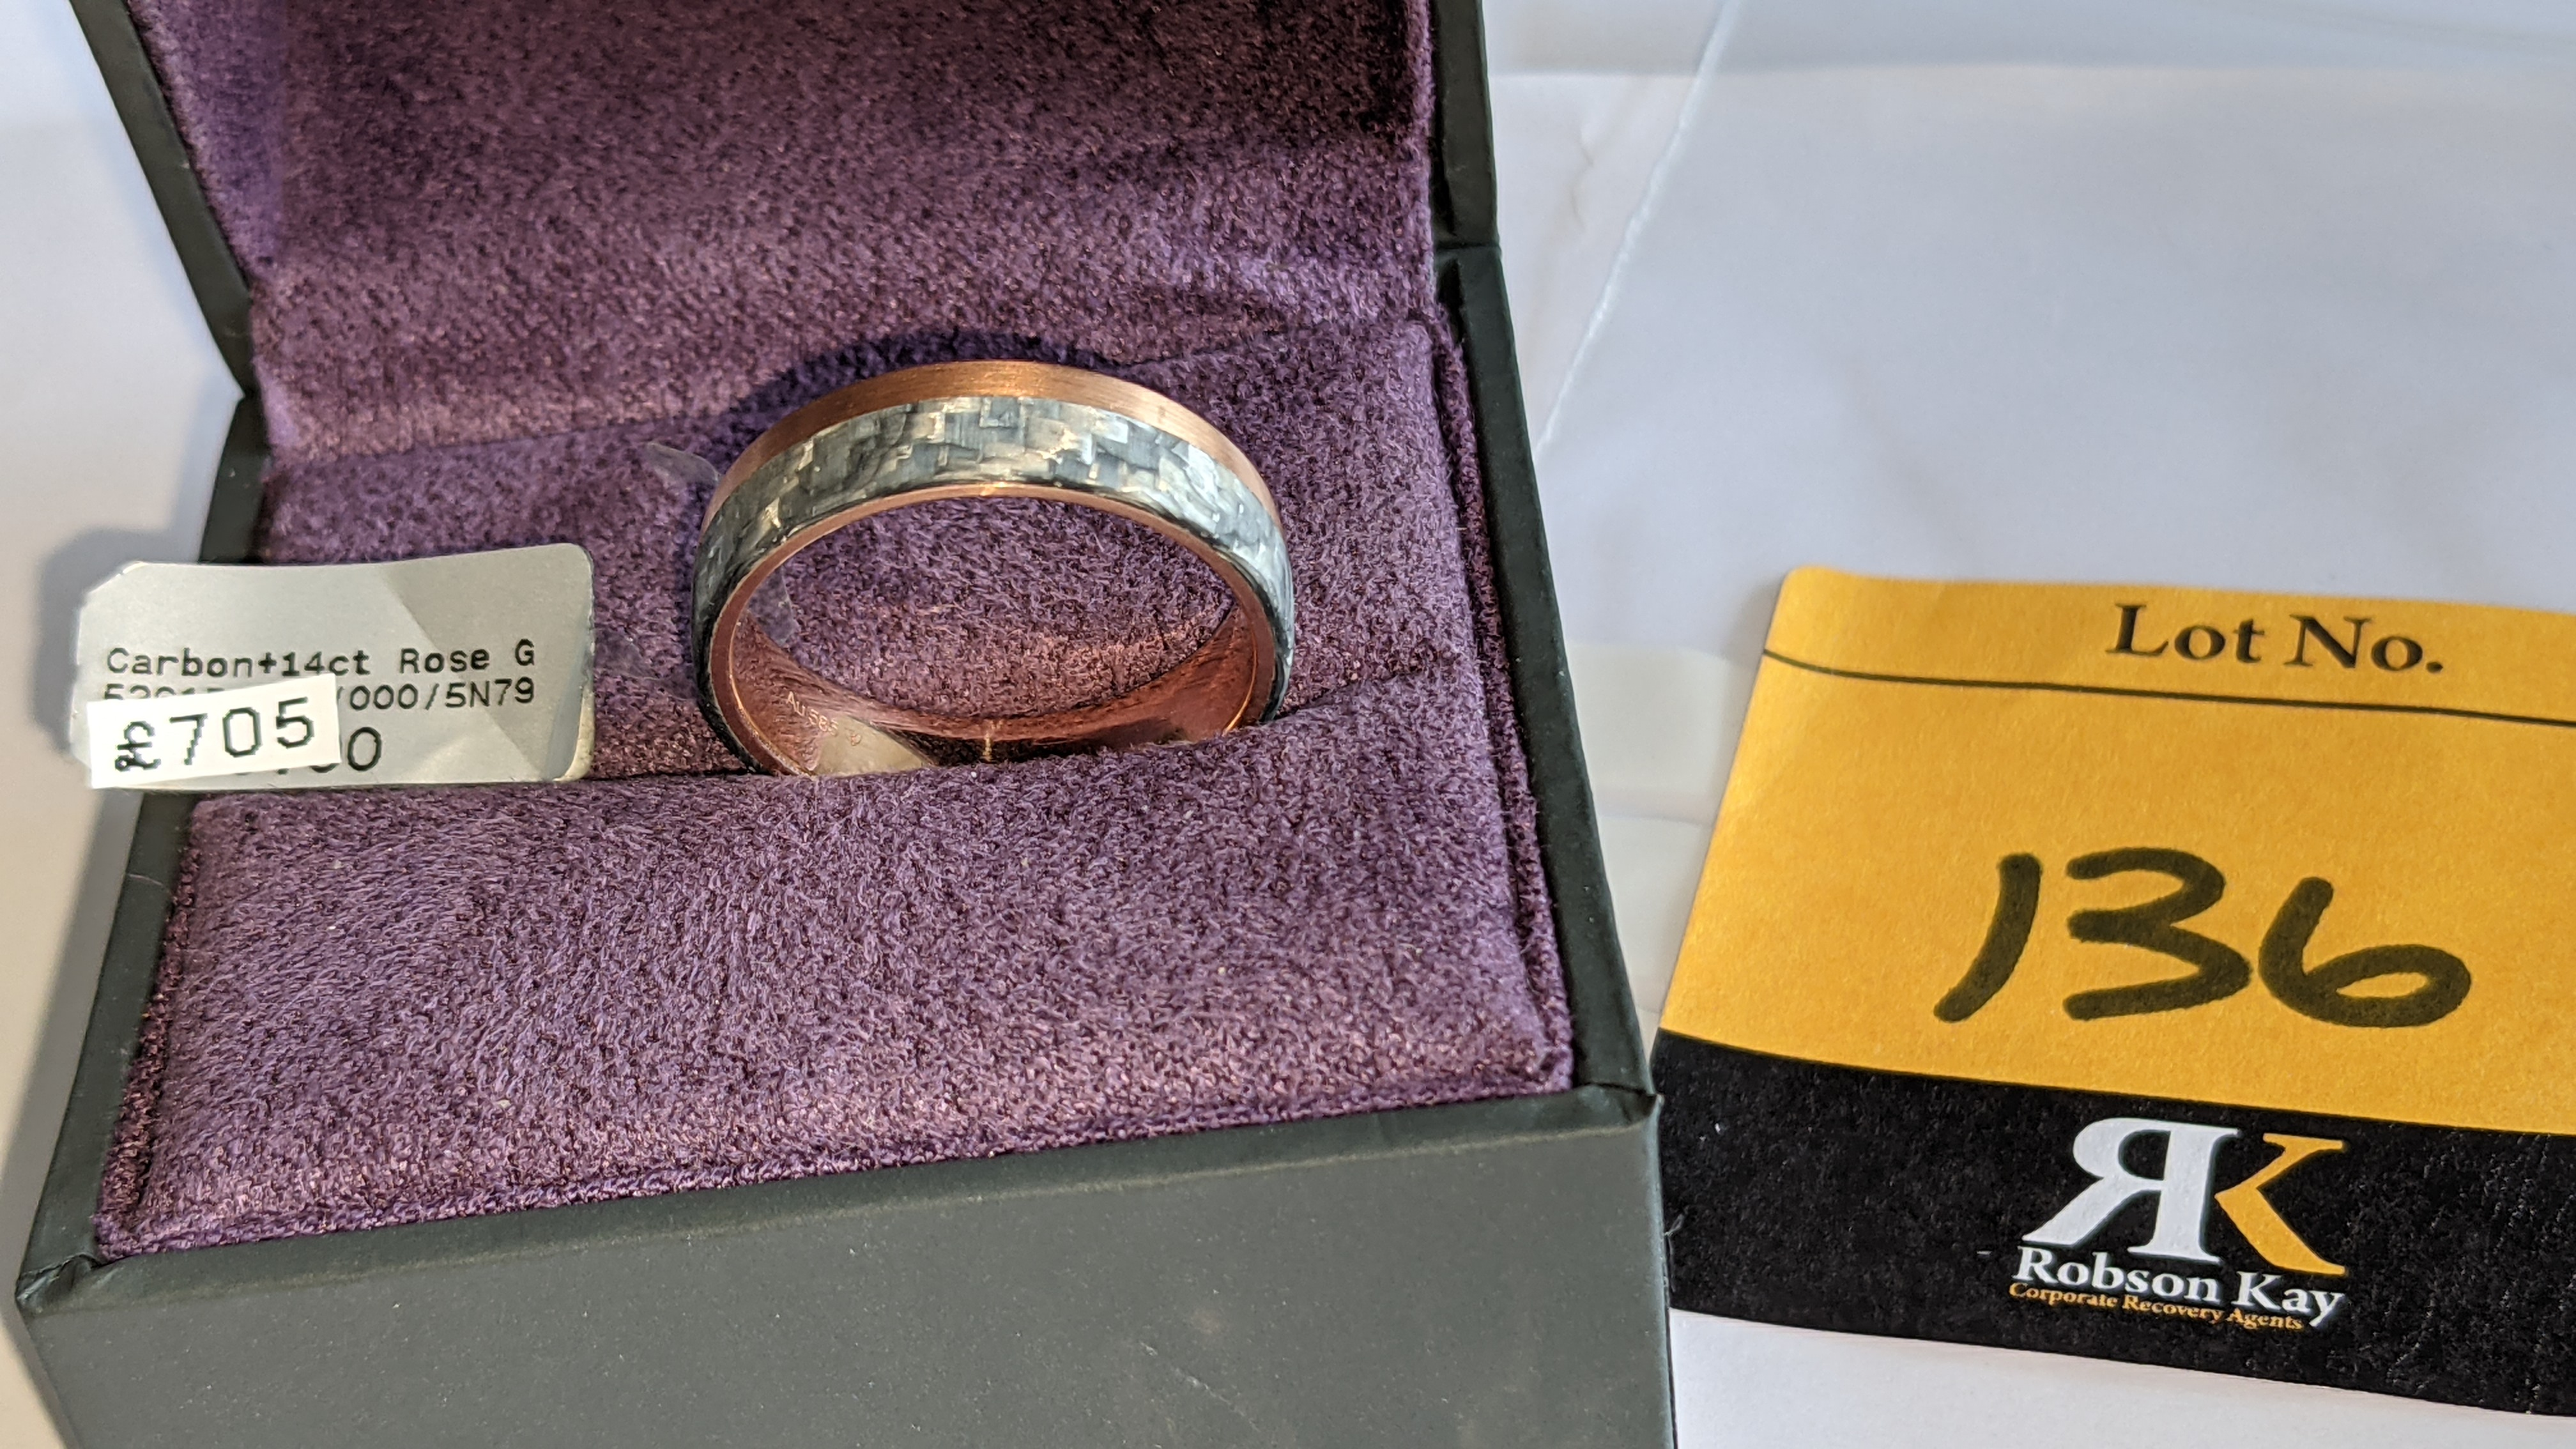 Carbon & 14ct rose gold ring RRP £705 - Image 2 of 13